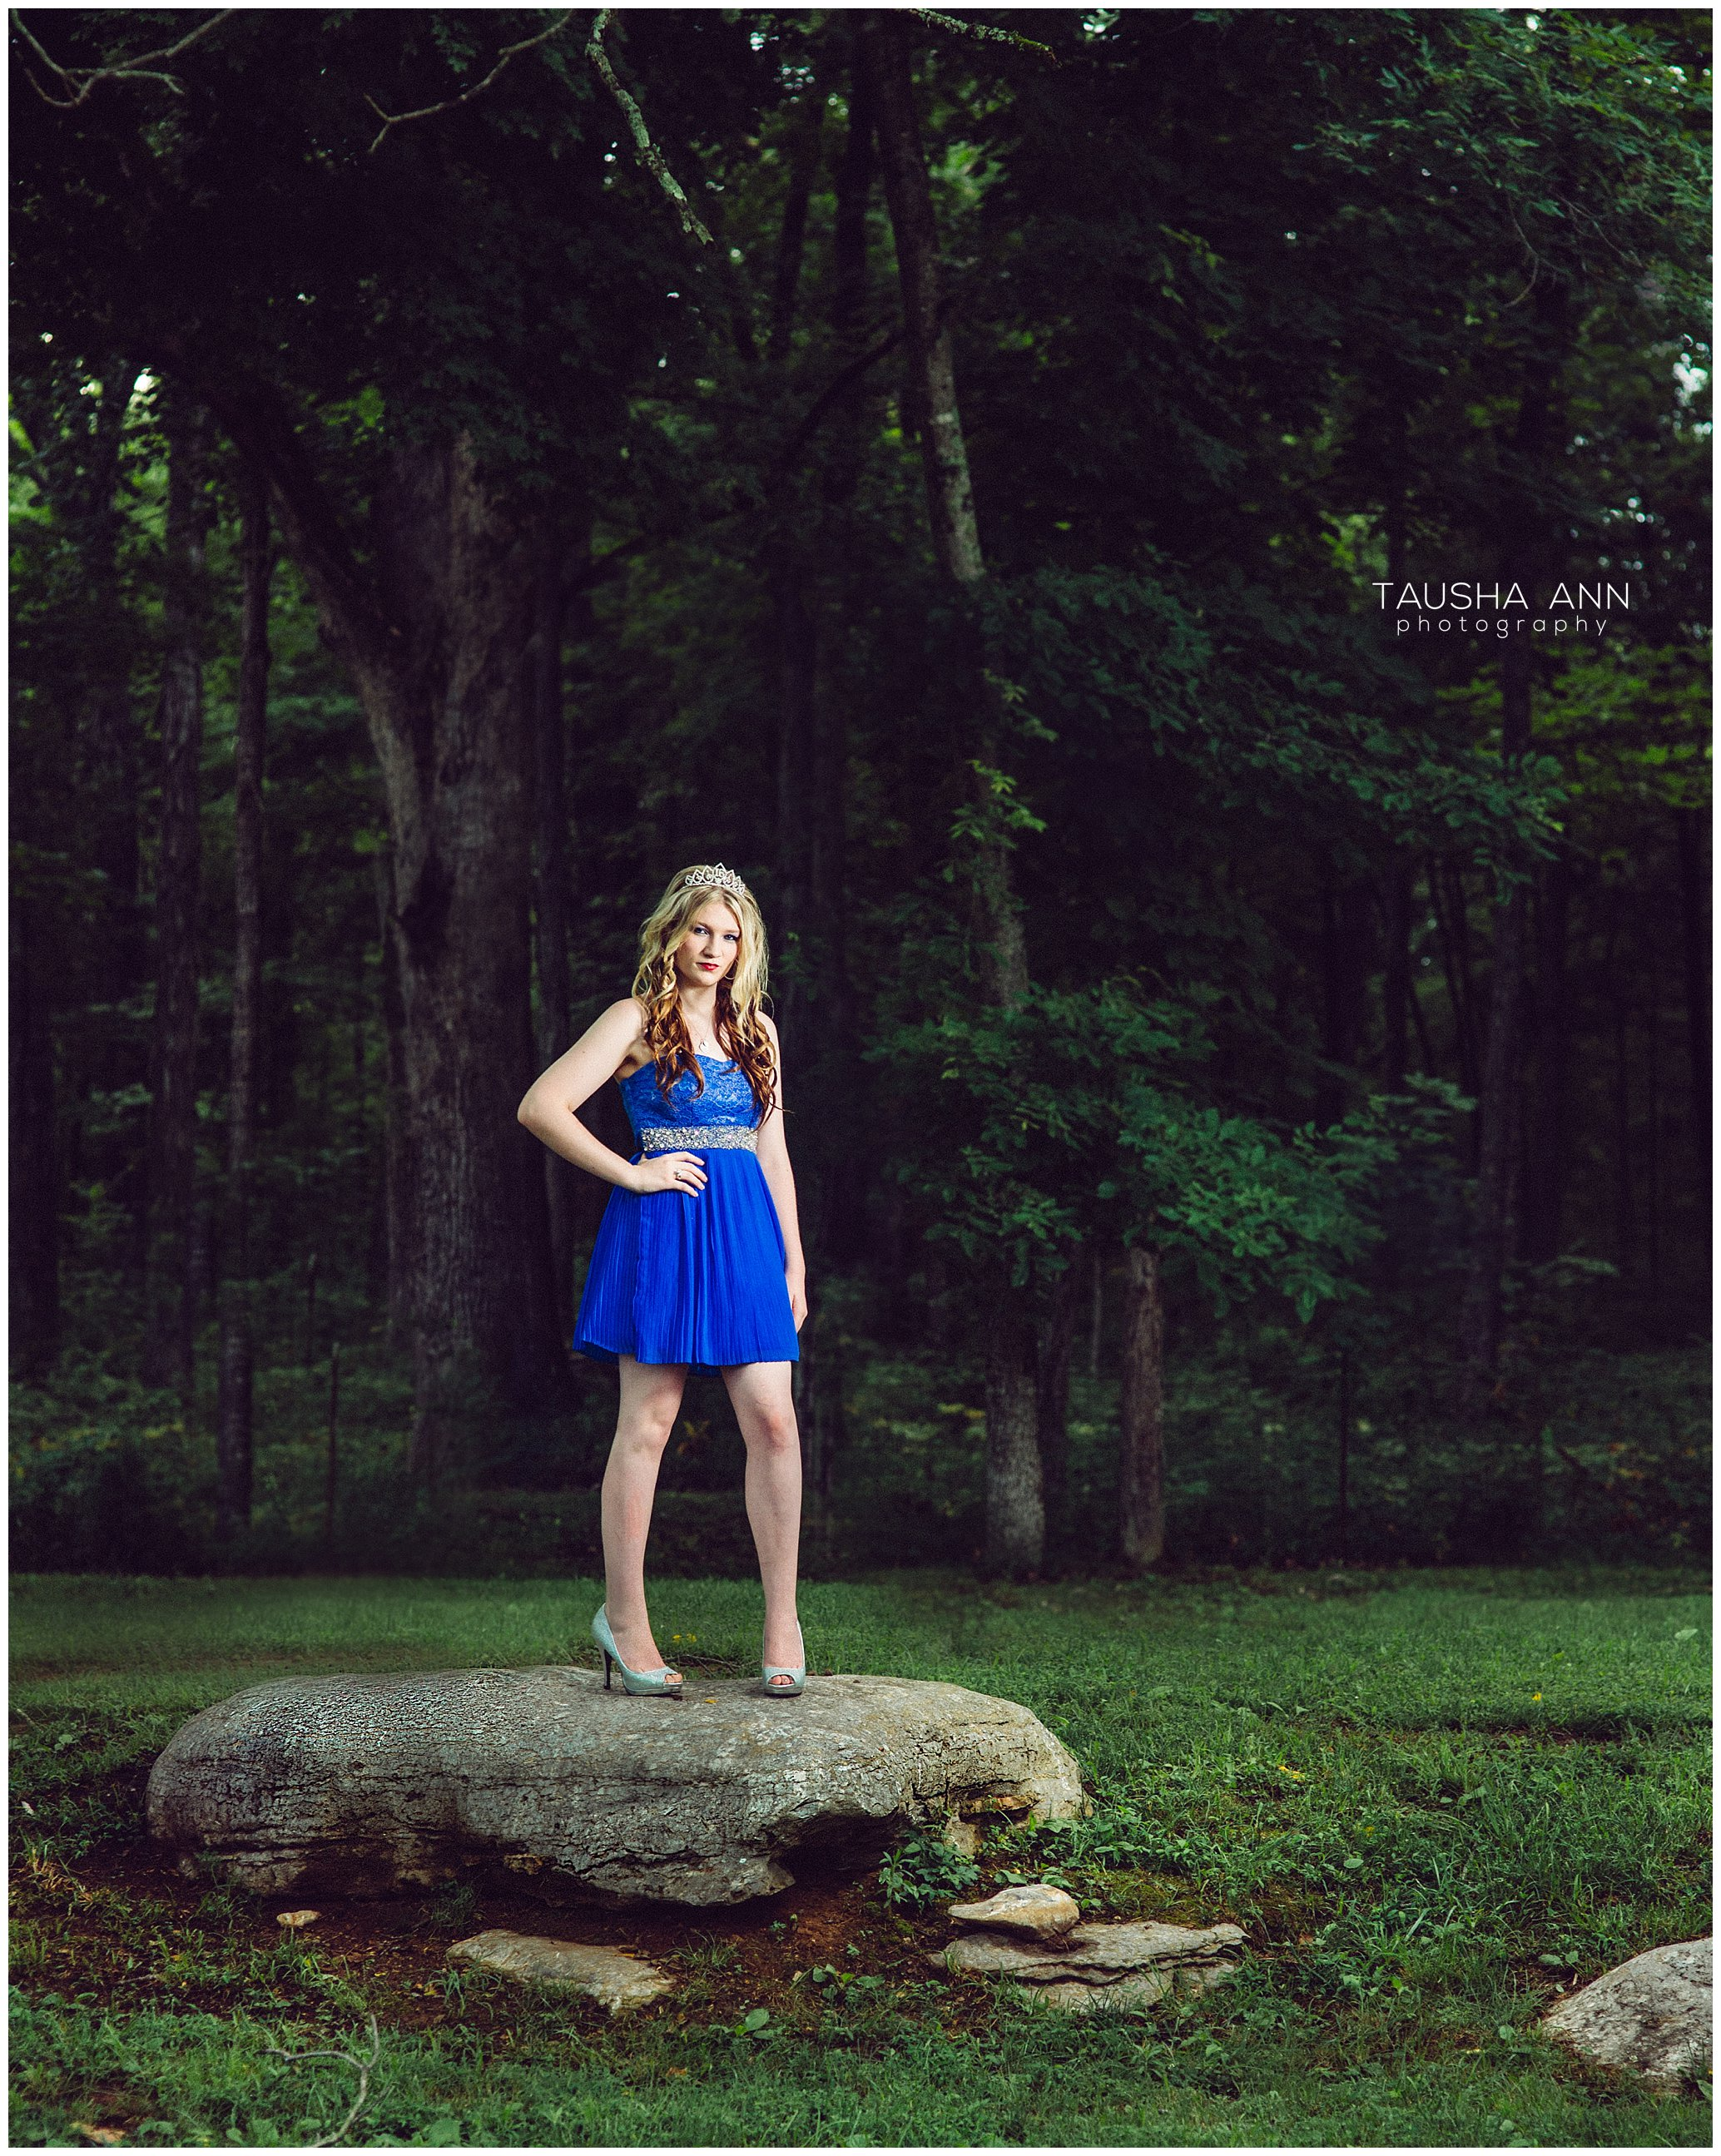 Sammie's_Sweet_16_Duck_Pond_Farm_Mt_Juliet_Tausha_Ann_Photography_Model_Nashville_Franklin_Spinning_Blue_Dress_Tiara_Standing_On_A_Rock_Fashion